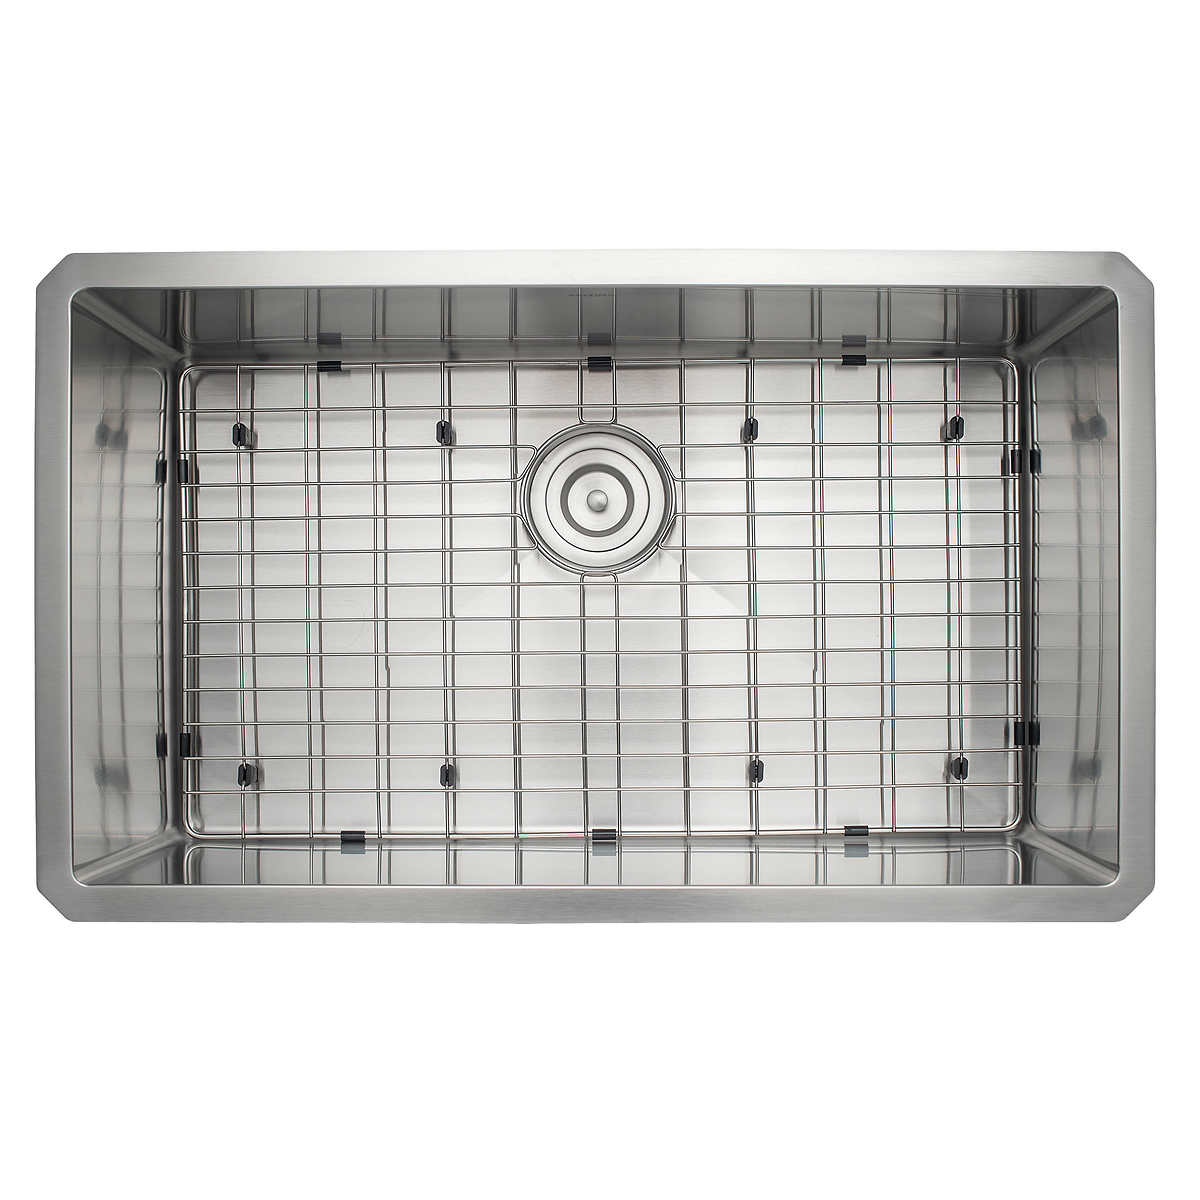 Ancona Prestige Series Undermount Stainless Steel 30 In Single Bowl Kitchen Sink With Grid And Strainer